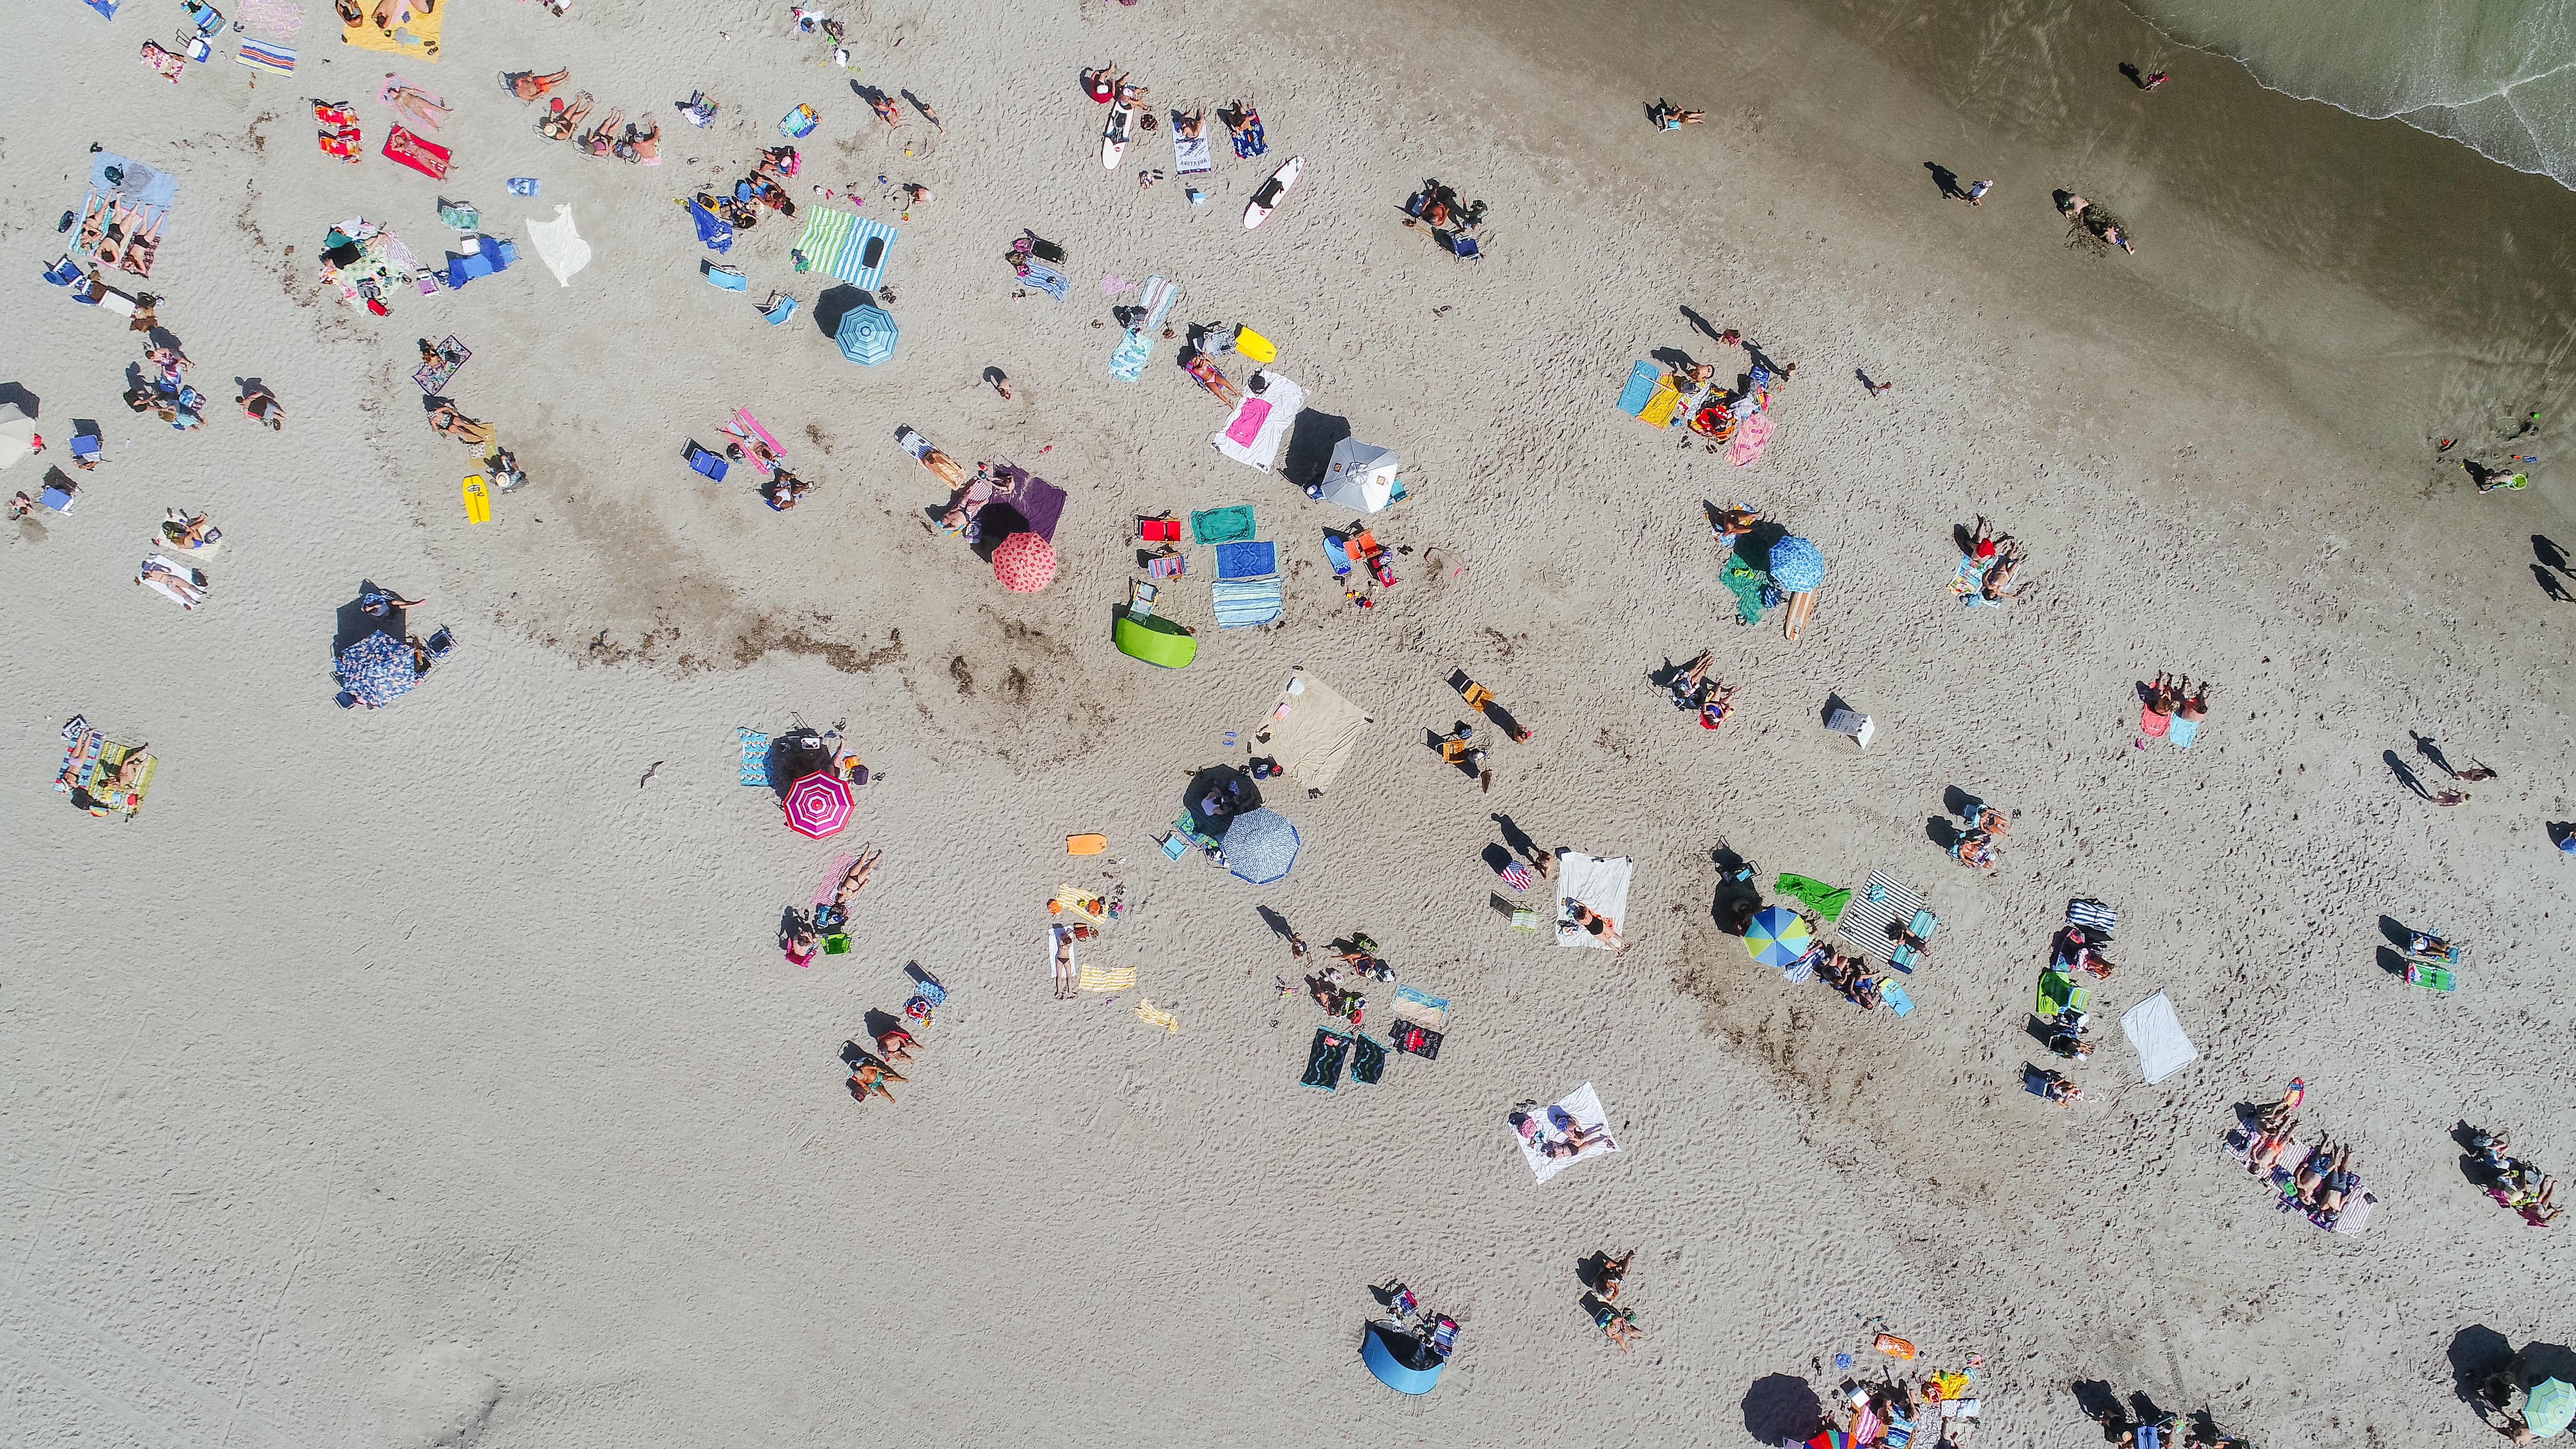 A drone shot of people vacationing on a beach with colorful umbrellas and towels